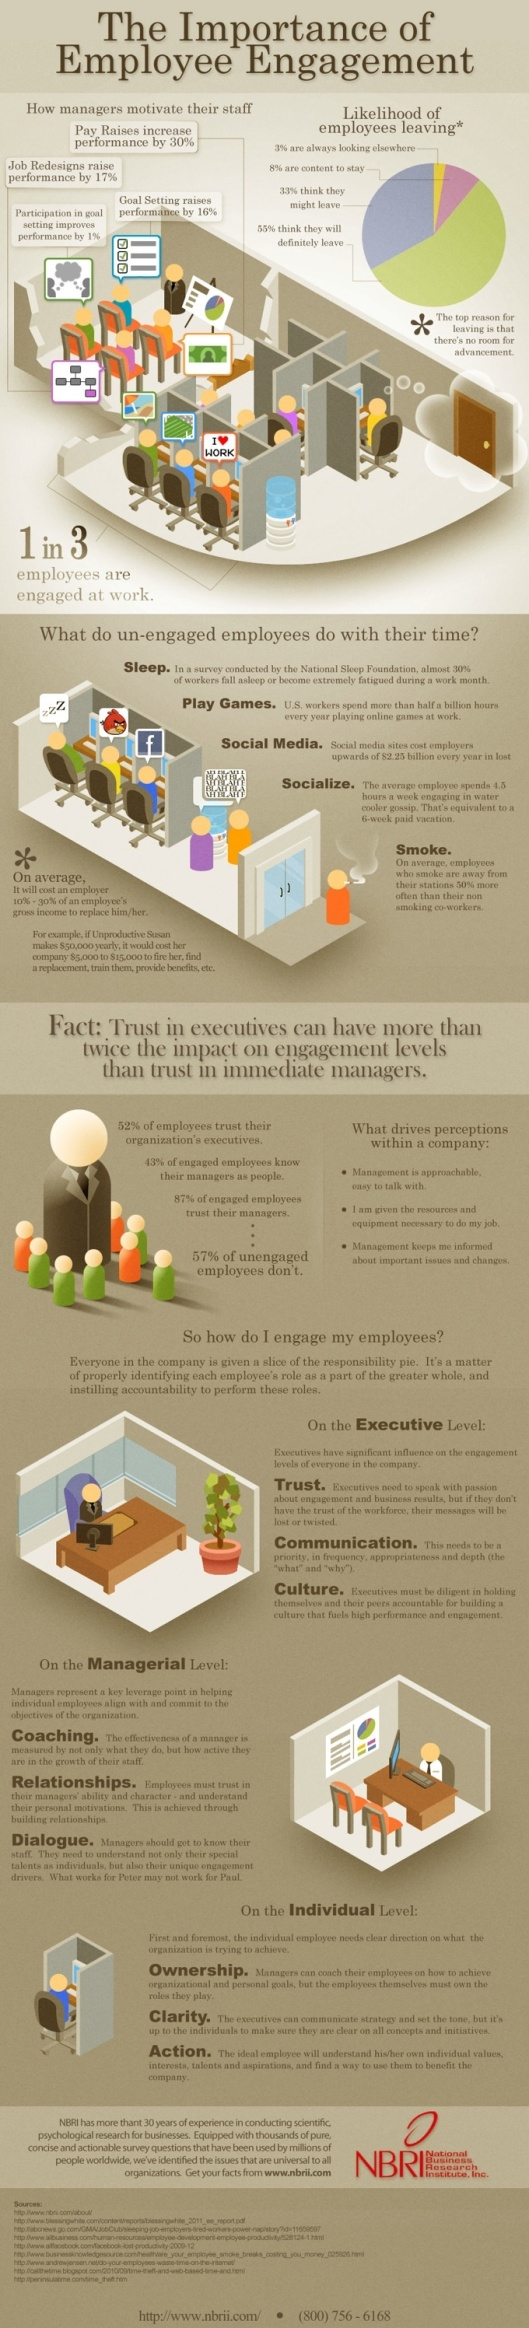 The Importance of Employee Engagement 12 12 2013